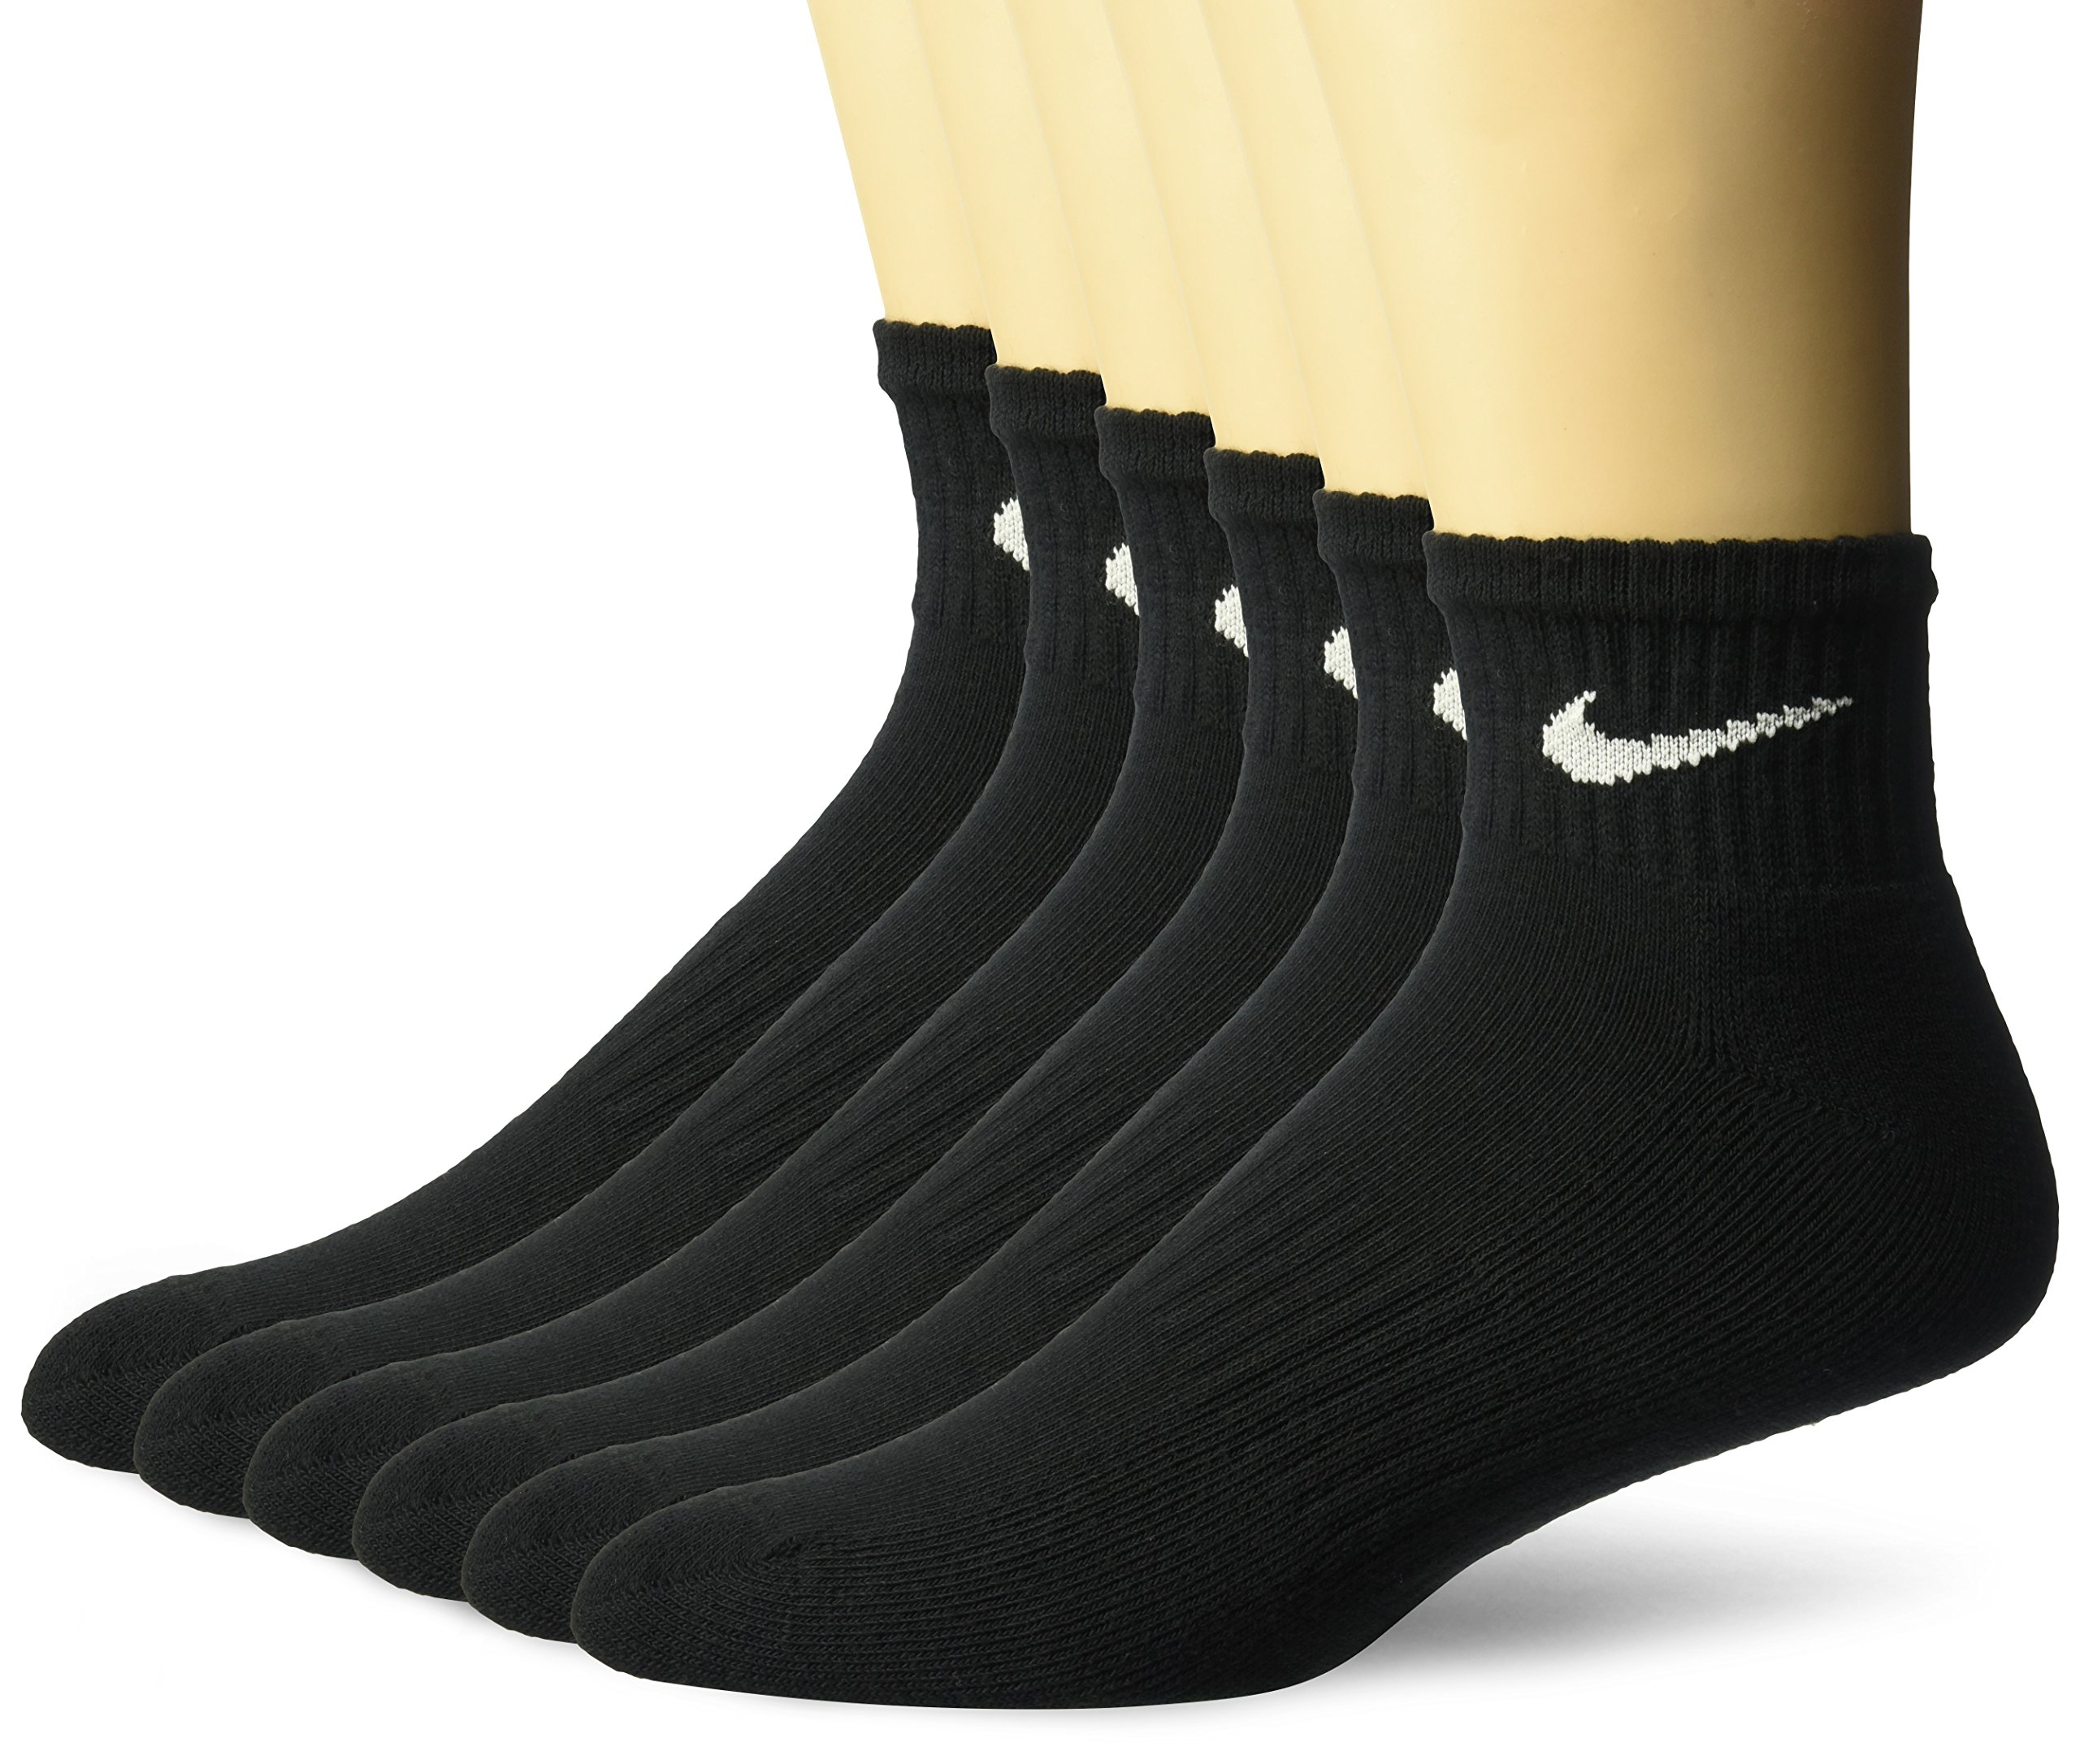 NIKE Unisex Performance Cushion Quarter Socks with Band (6 Pairs), Black/White, Large